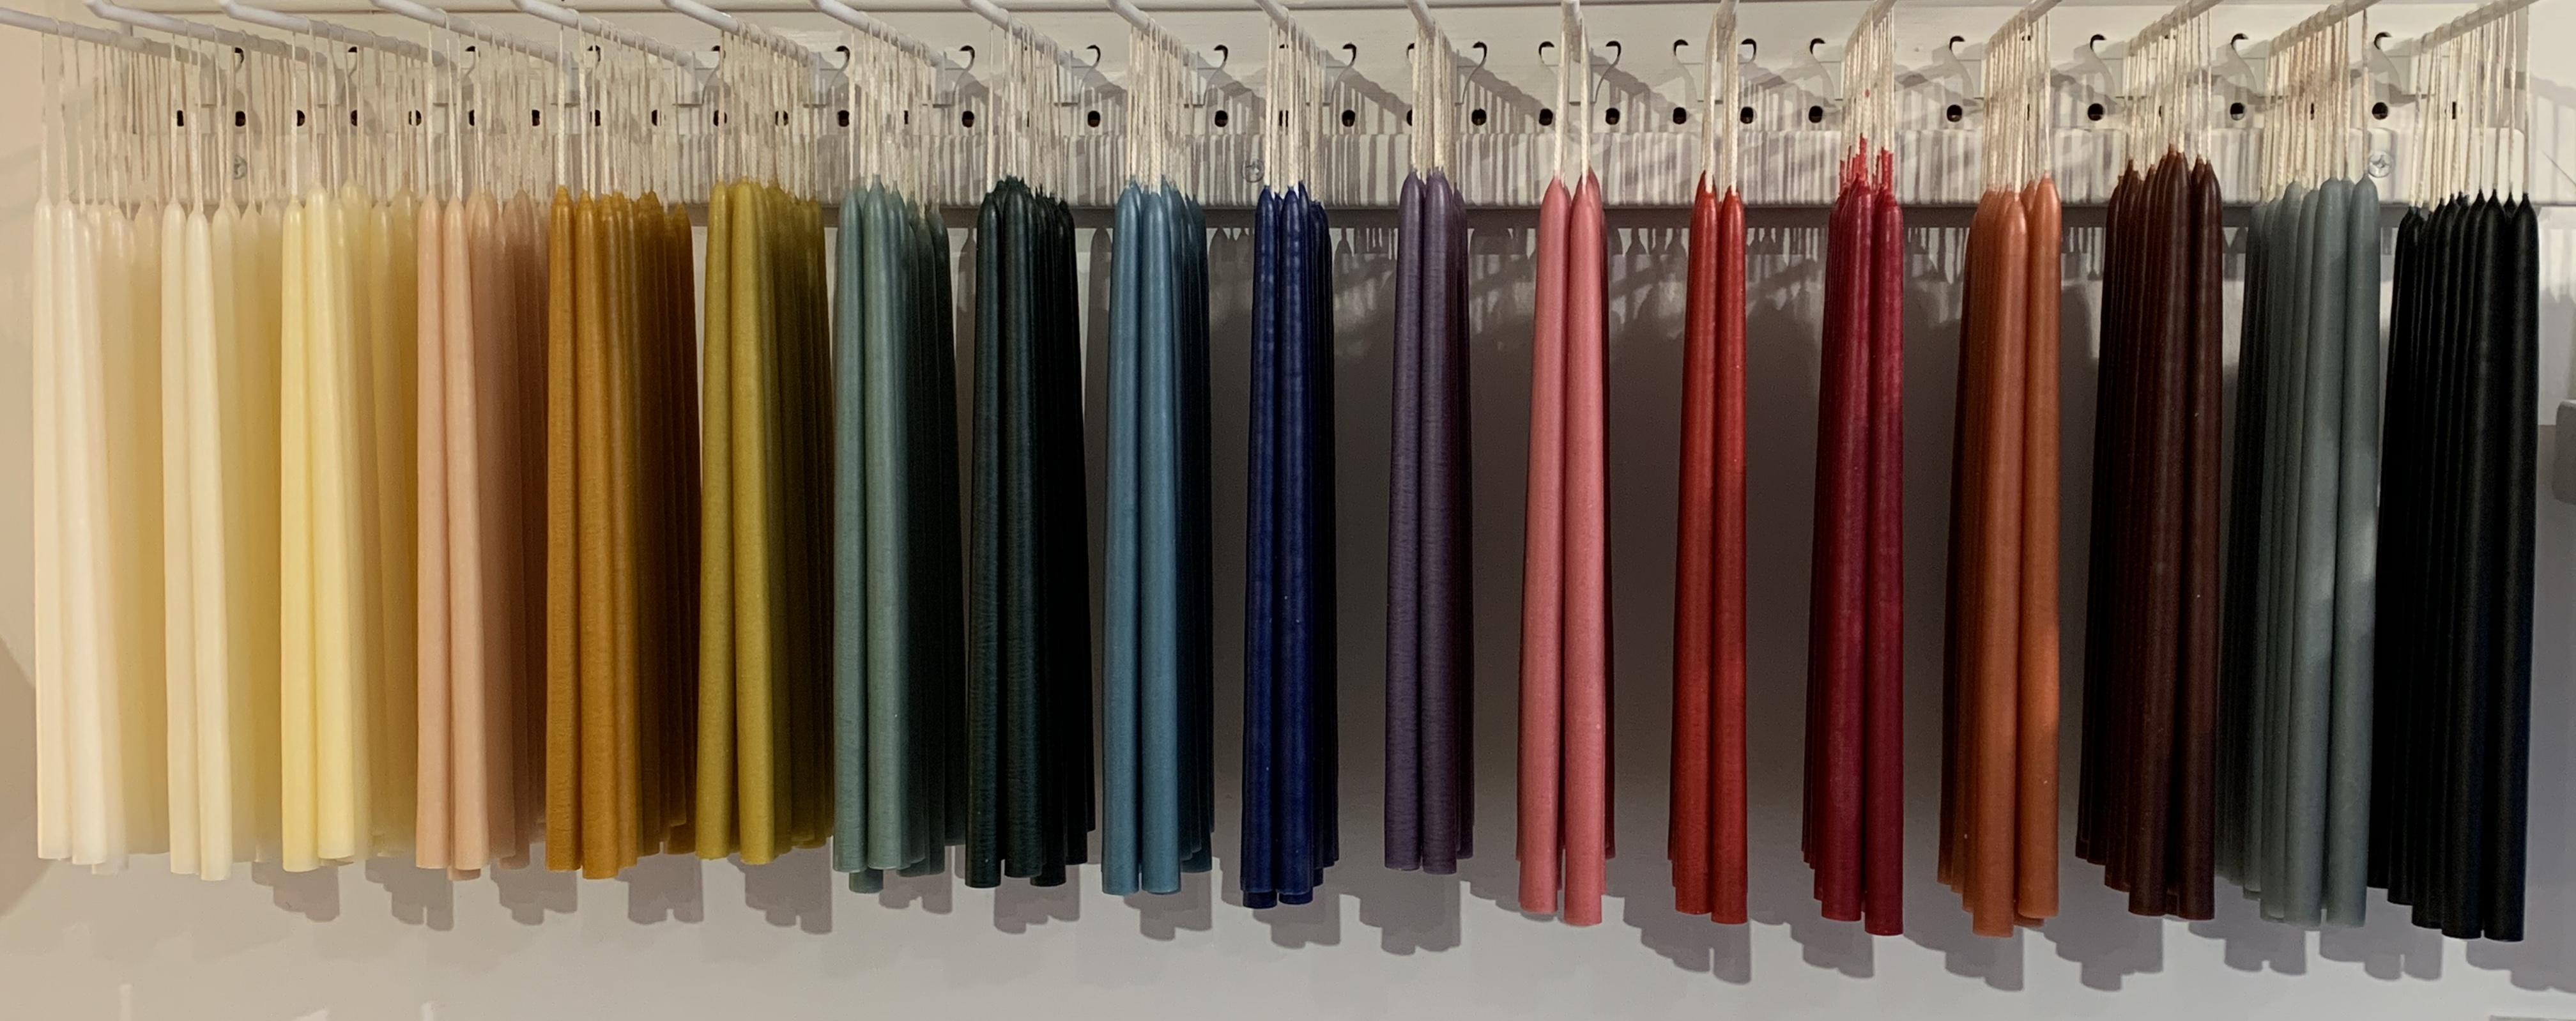 "1/2"" Slim Candles in 18 colors"